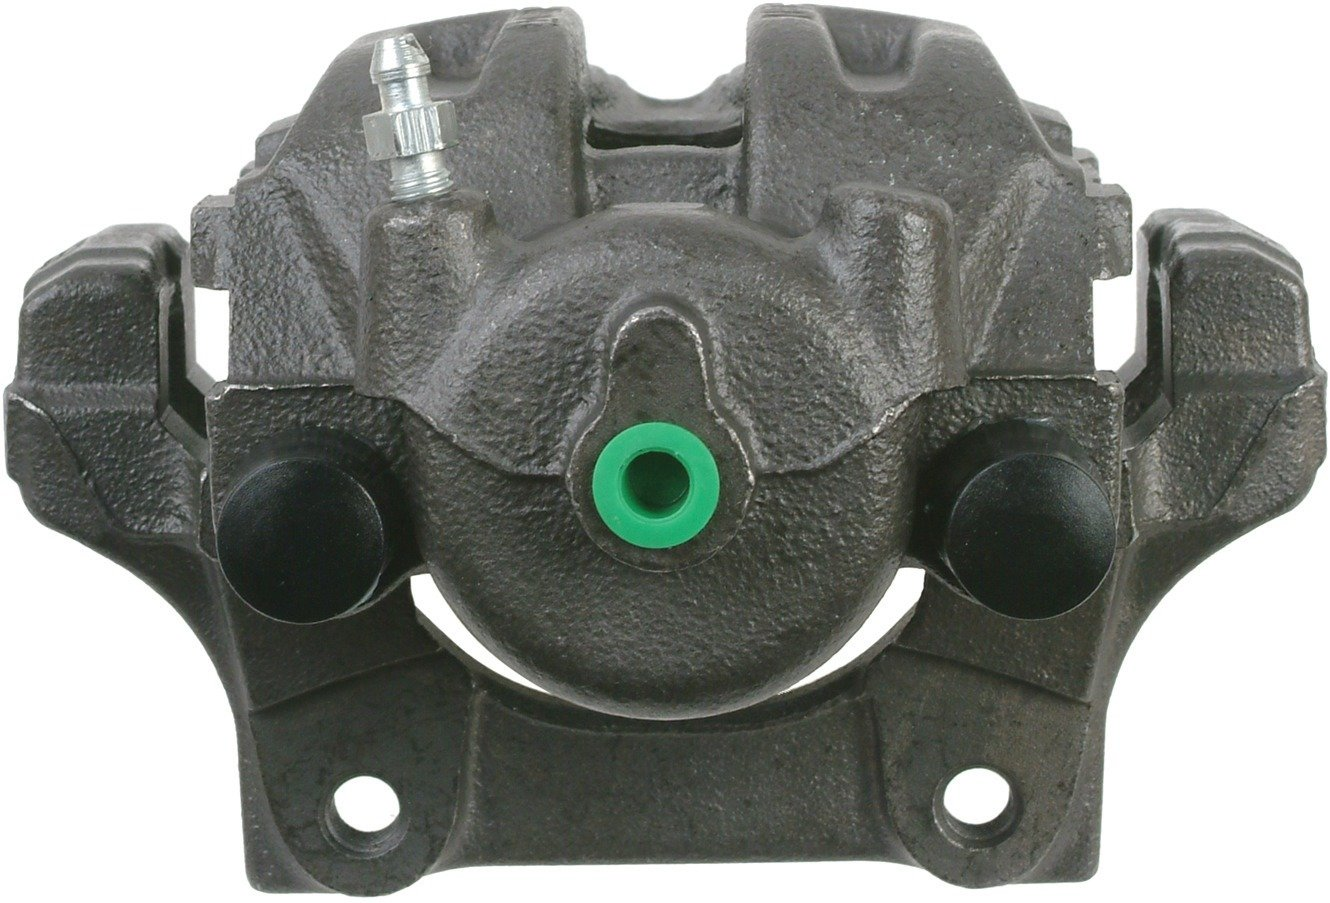 Brake Caliper A1 Cardone Cardone 19-B3226 Remanufactured Import Friction Ready Unloaded